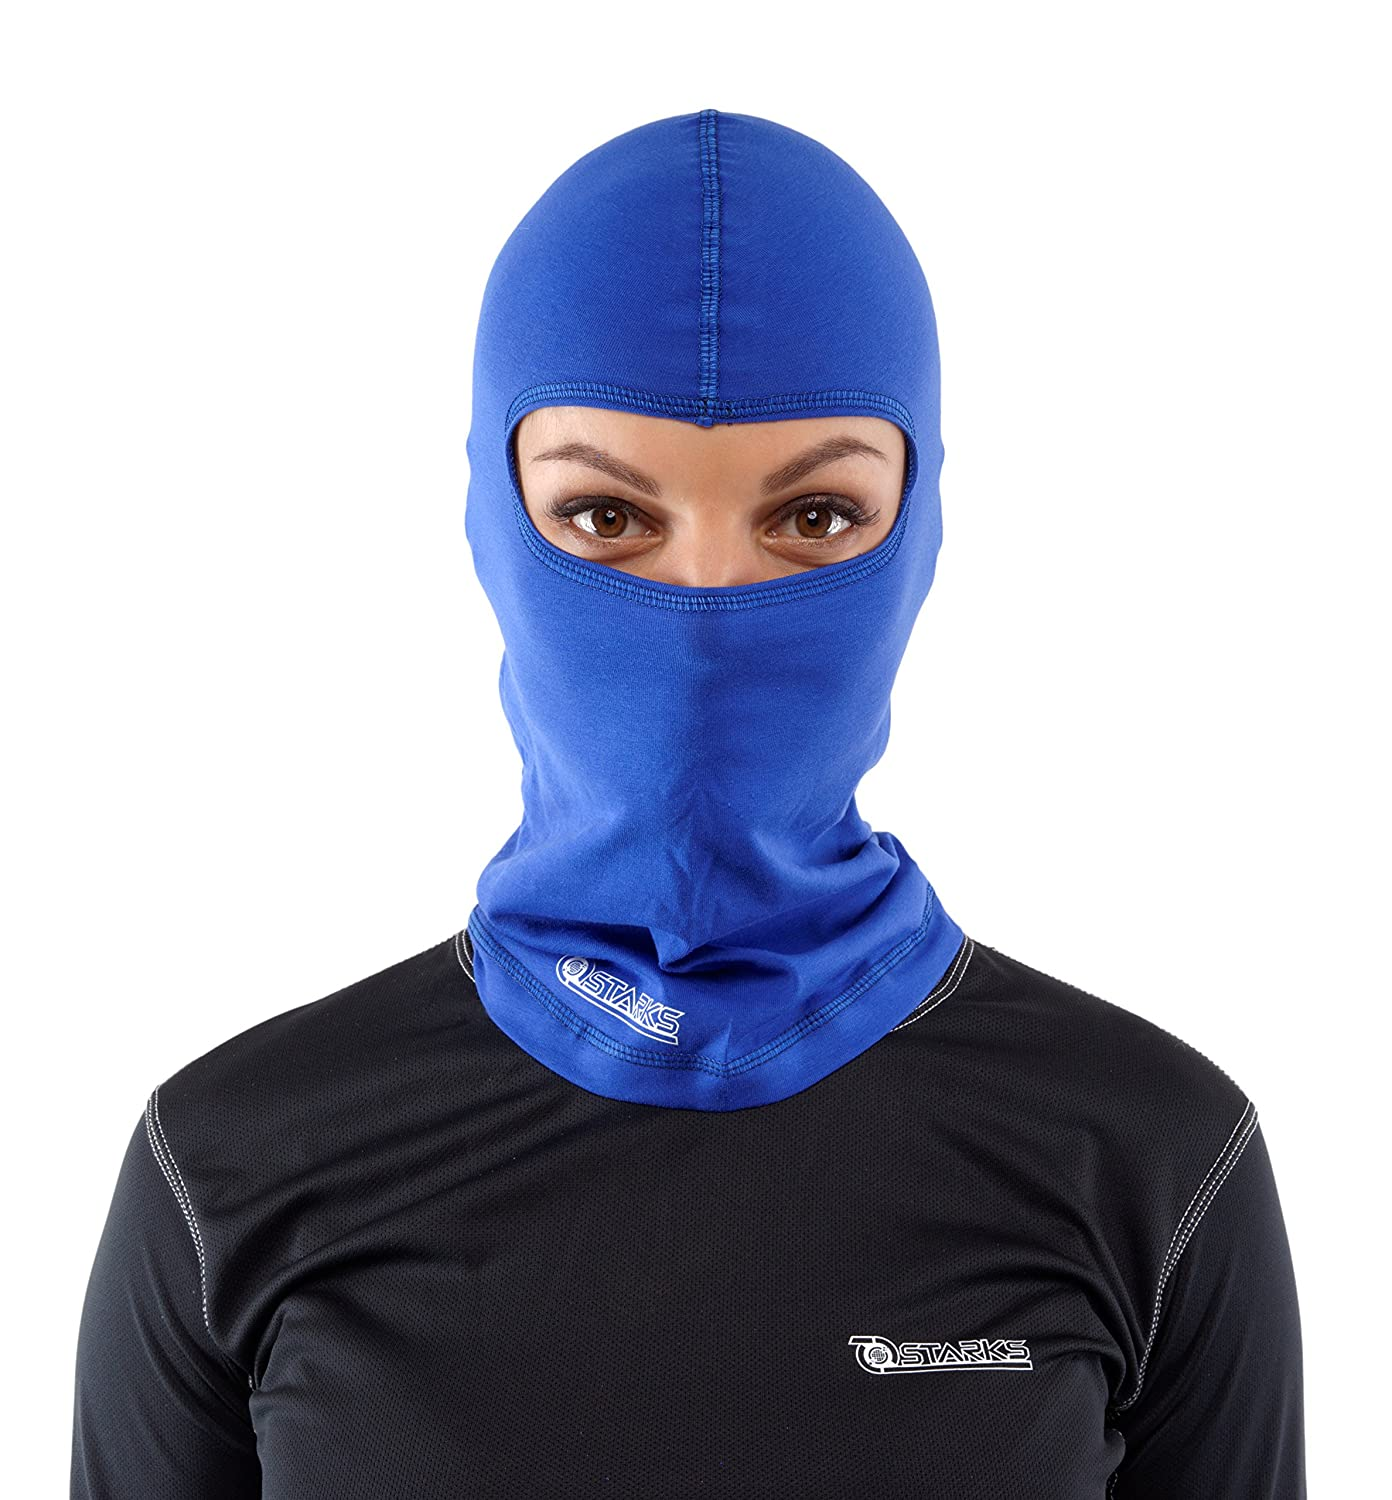 Starks Sturmhaube Motorrad Sommer Balaclava Herren Fahrrad Sturmmaske | 90% Baumwolle Quick Dry, Protect from Dust Sun Wind | Ideal for Summer Extreme Sport Rad Motorcycle Bike Outdoor Blau One Size MP0003.5